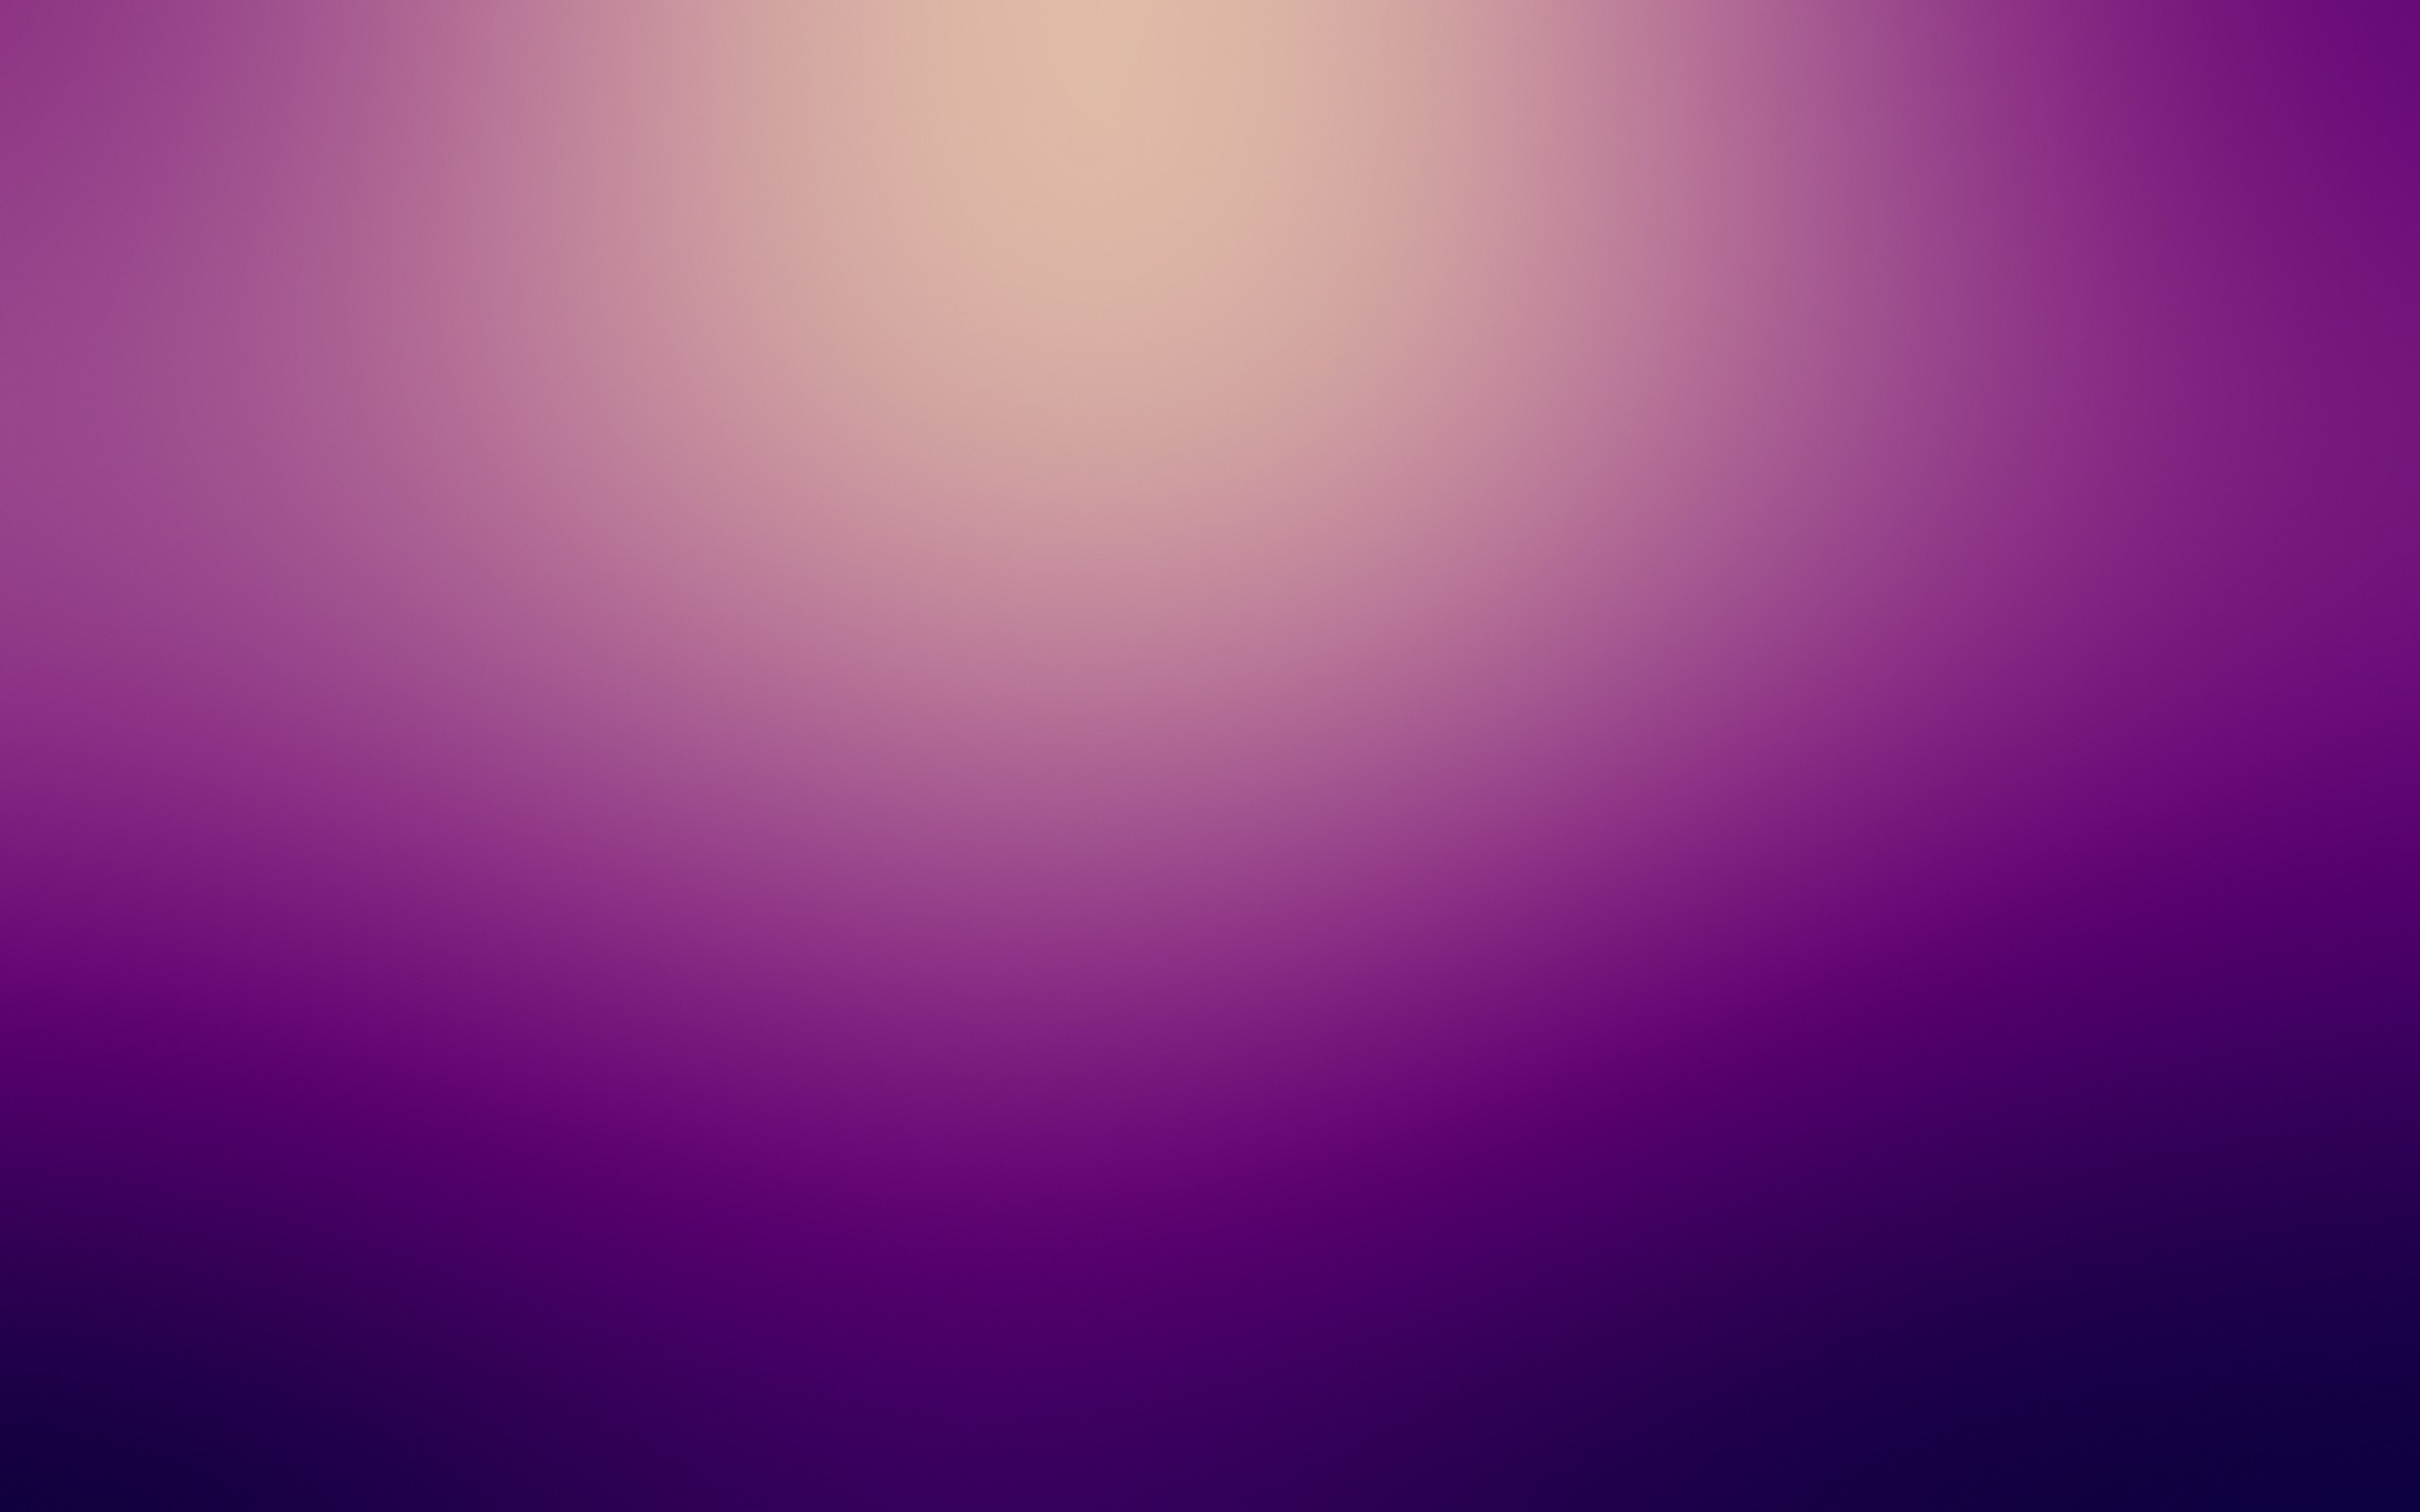 Solid Bright Purple Background Solid purple background.